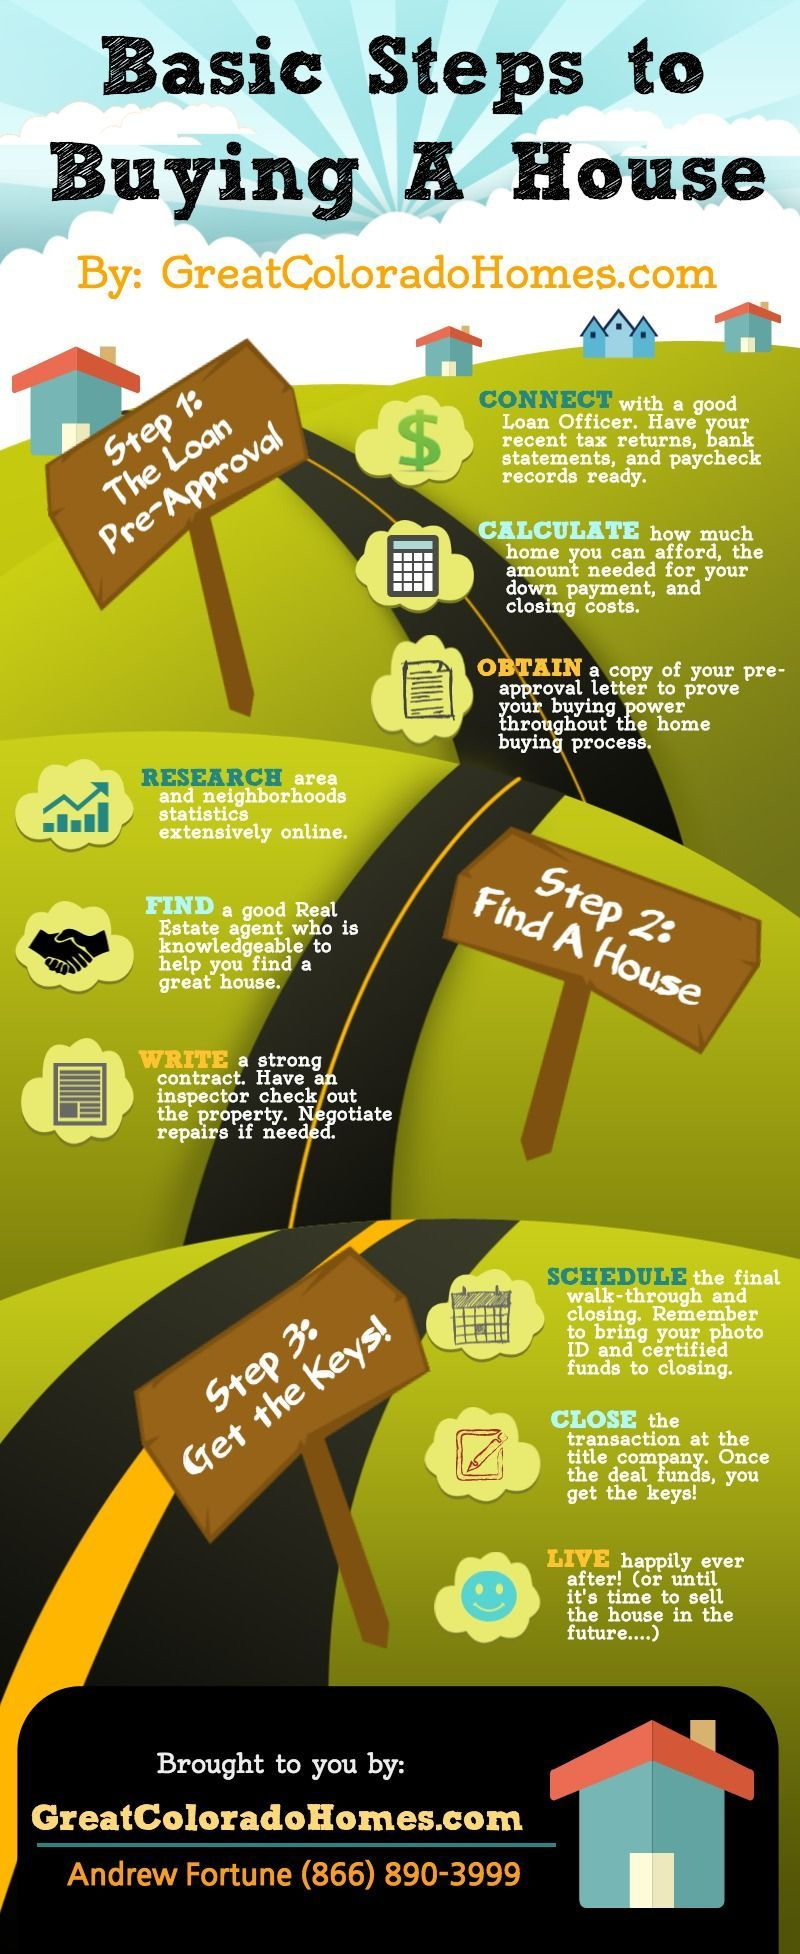 Real Estate Tipsographic More estate tips at http